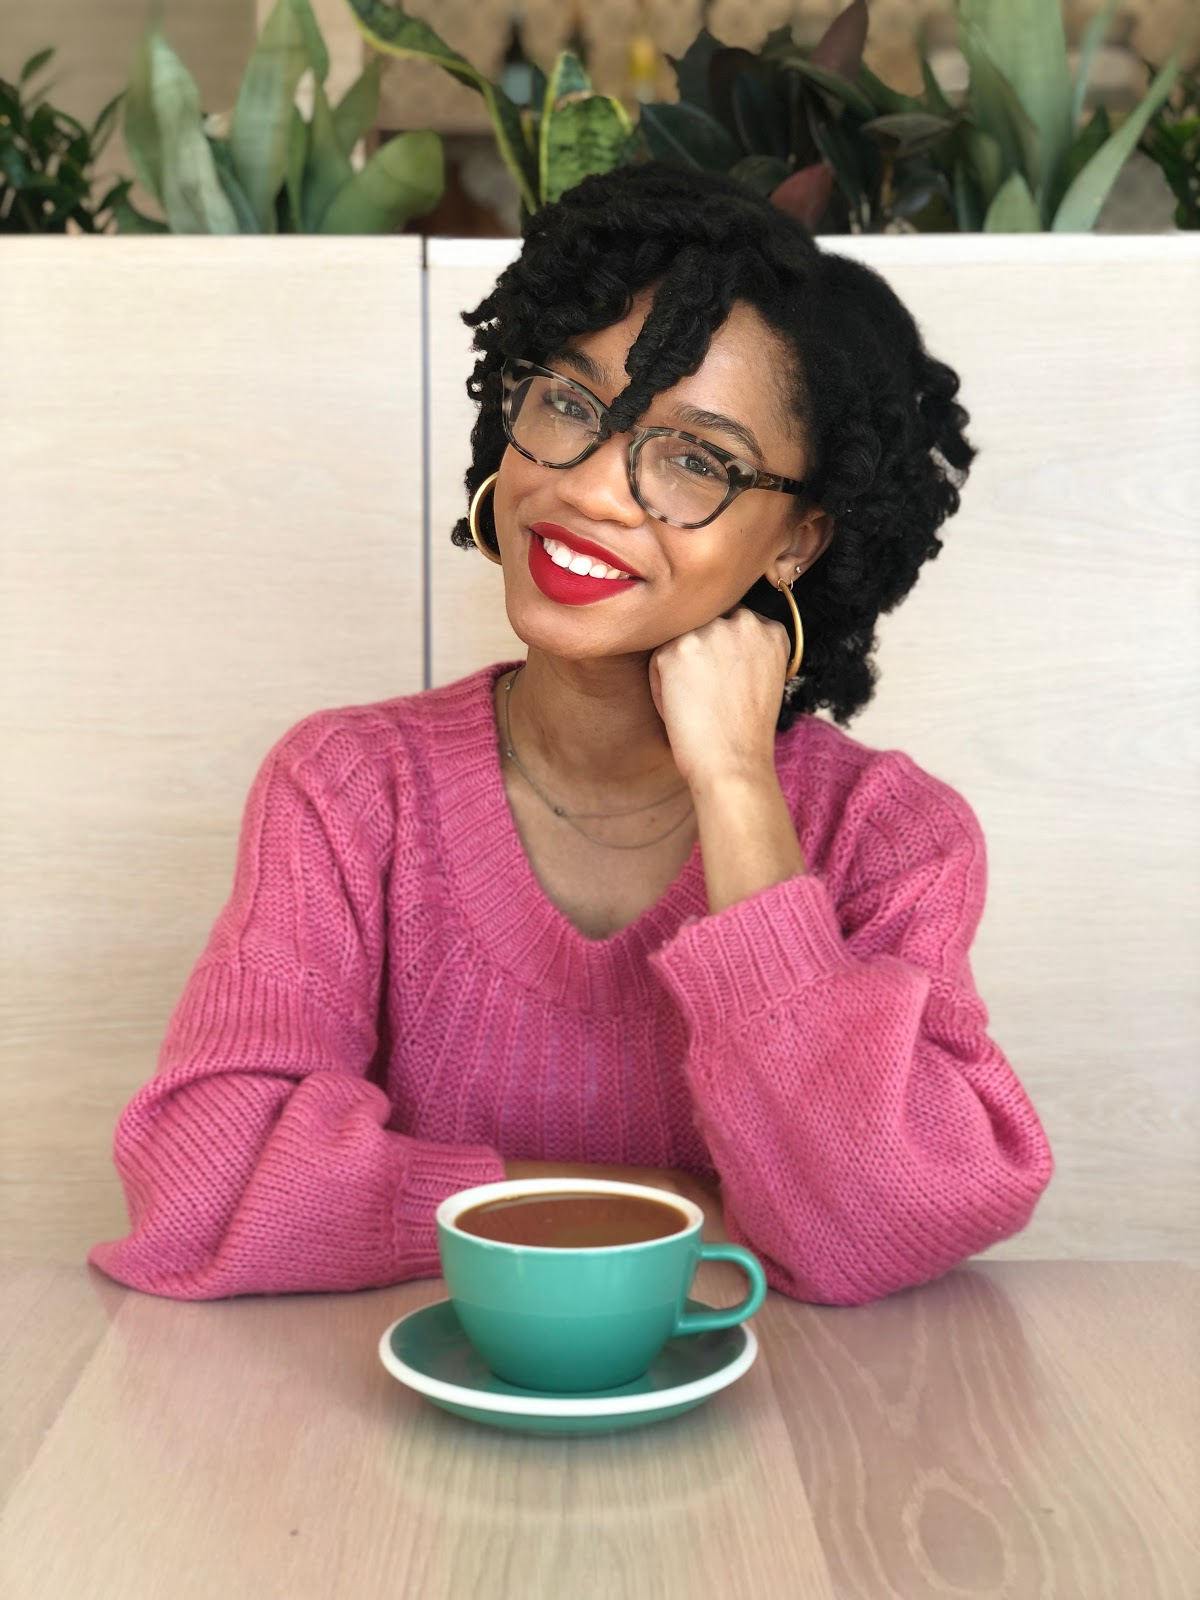 NC blogger wearing red lipstick and smiling wearing a pink sweater and perm rod set